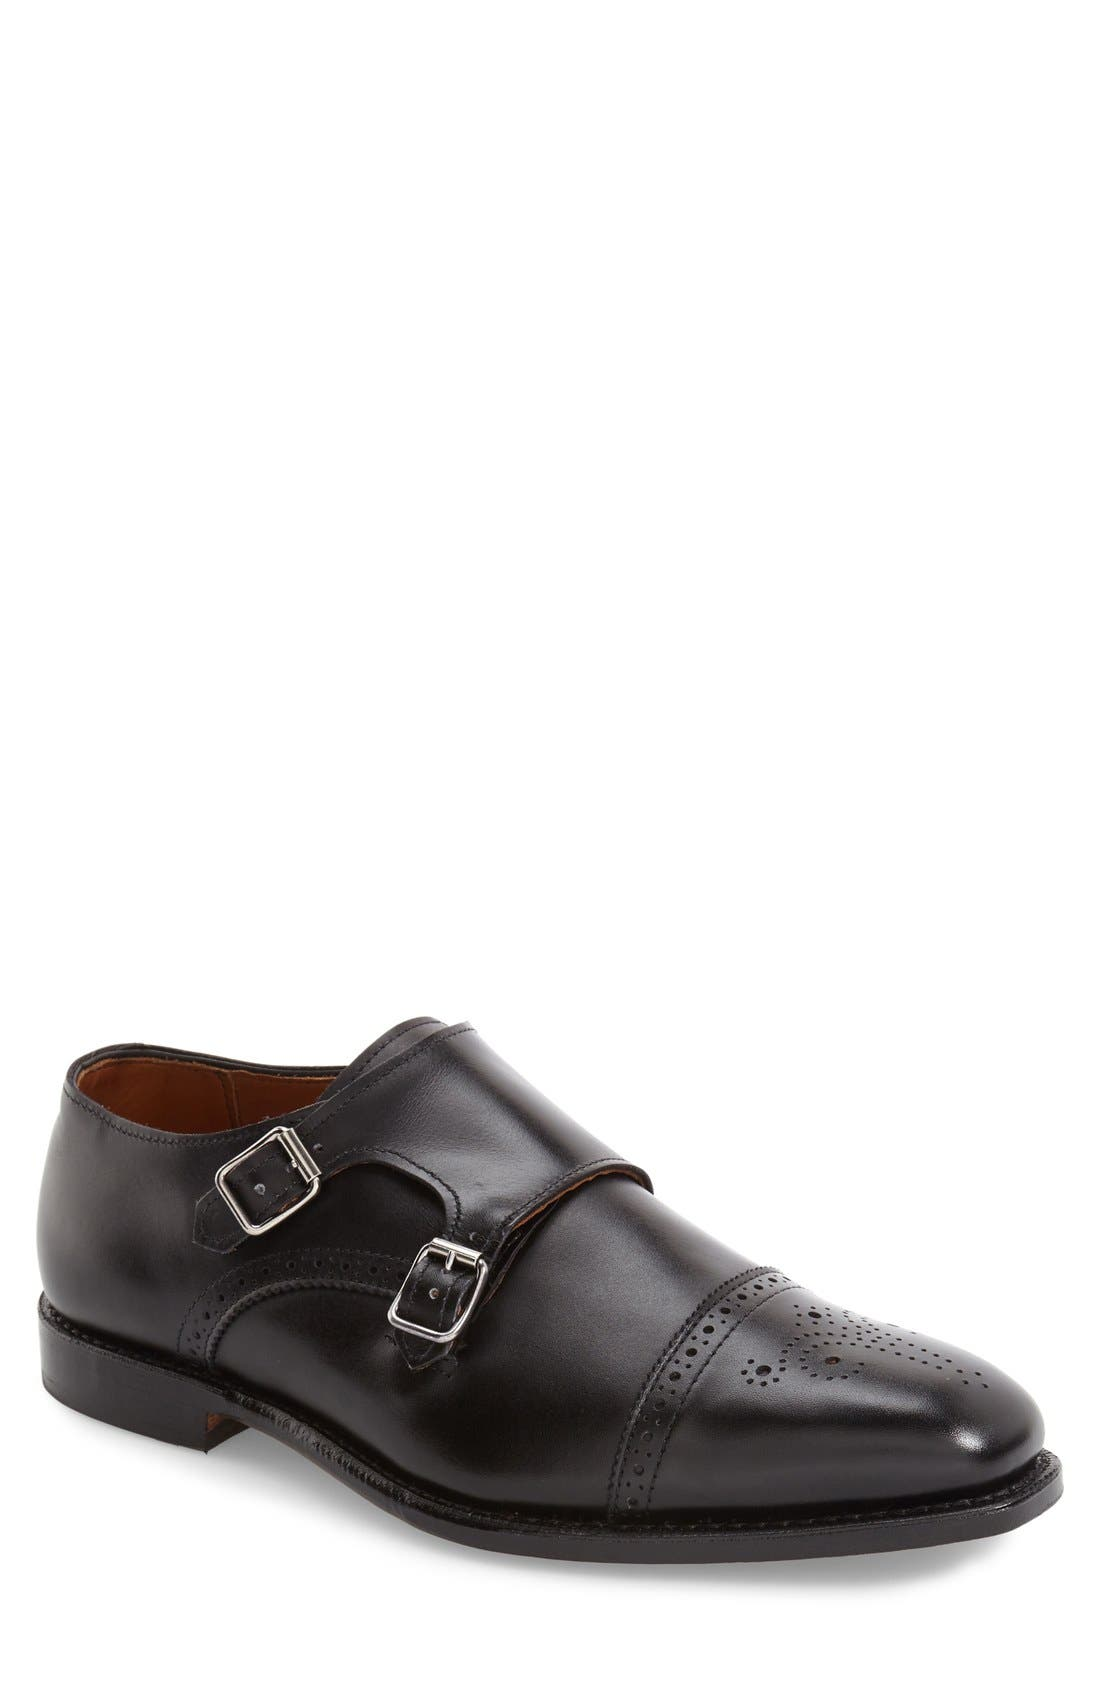 ALLEN EDMONDS 'St. Johns' Double Monk Strap Shoe, Main, color, BLACK LEATHER